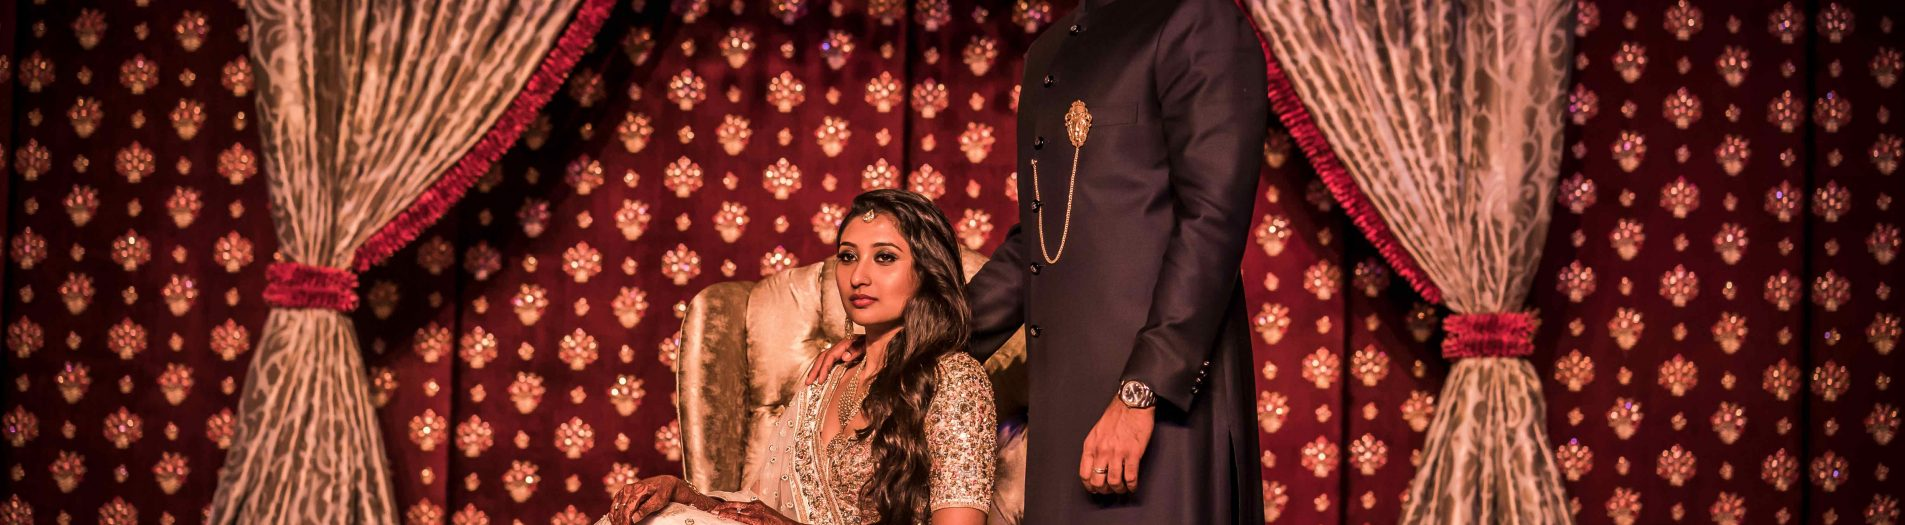 Monica, The Queen Of Lal Family got engaged at Crowne Plaza, Kochi. Weva proudly presents the engagement snaps of Monica and Allan which was so enthralling. We were lucky to be part of one such delightful union, which was even more enchanting with performances..